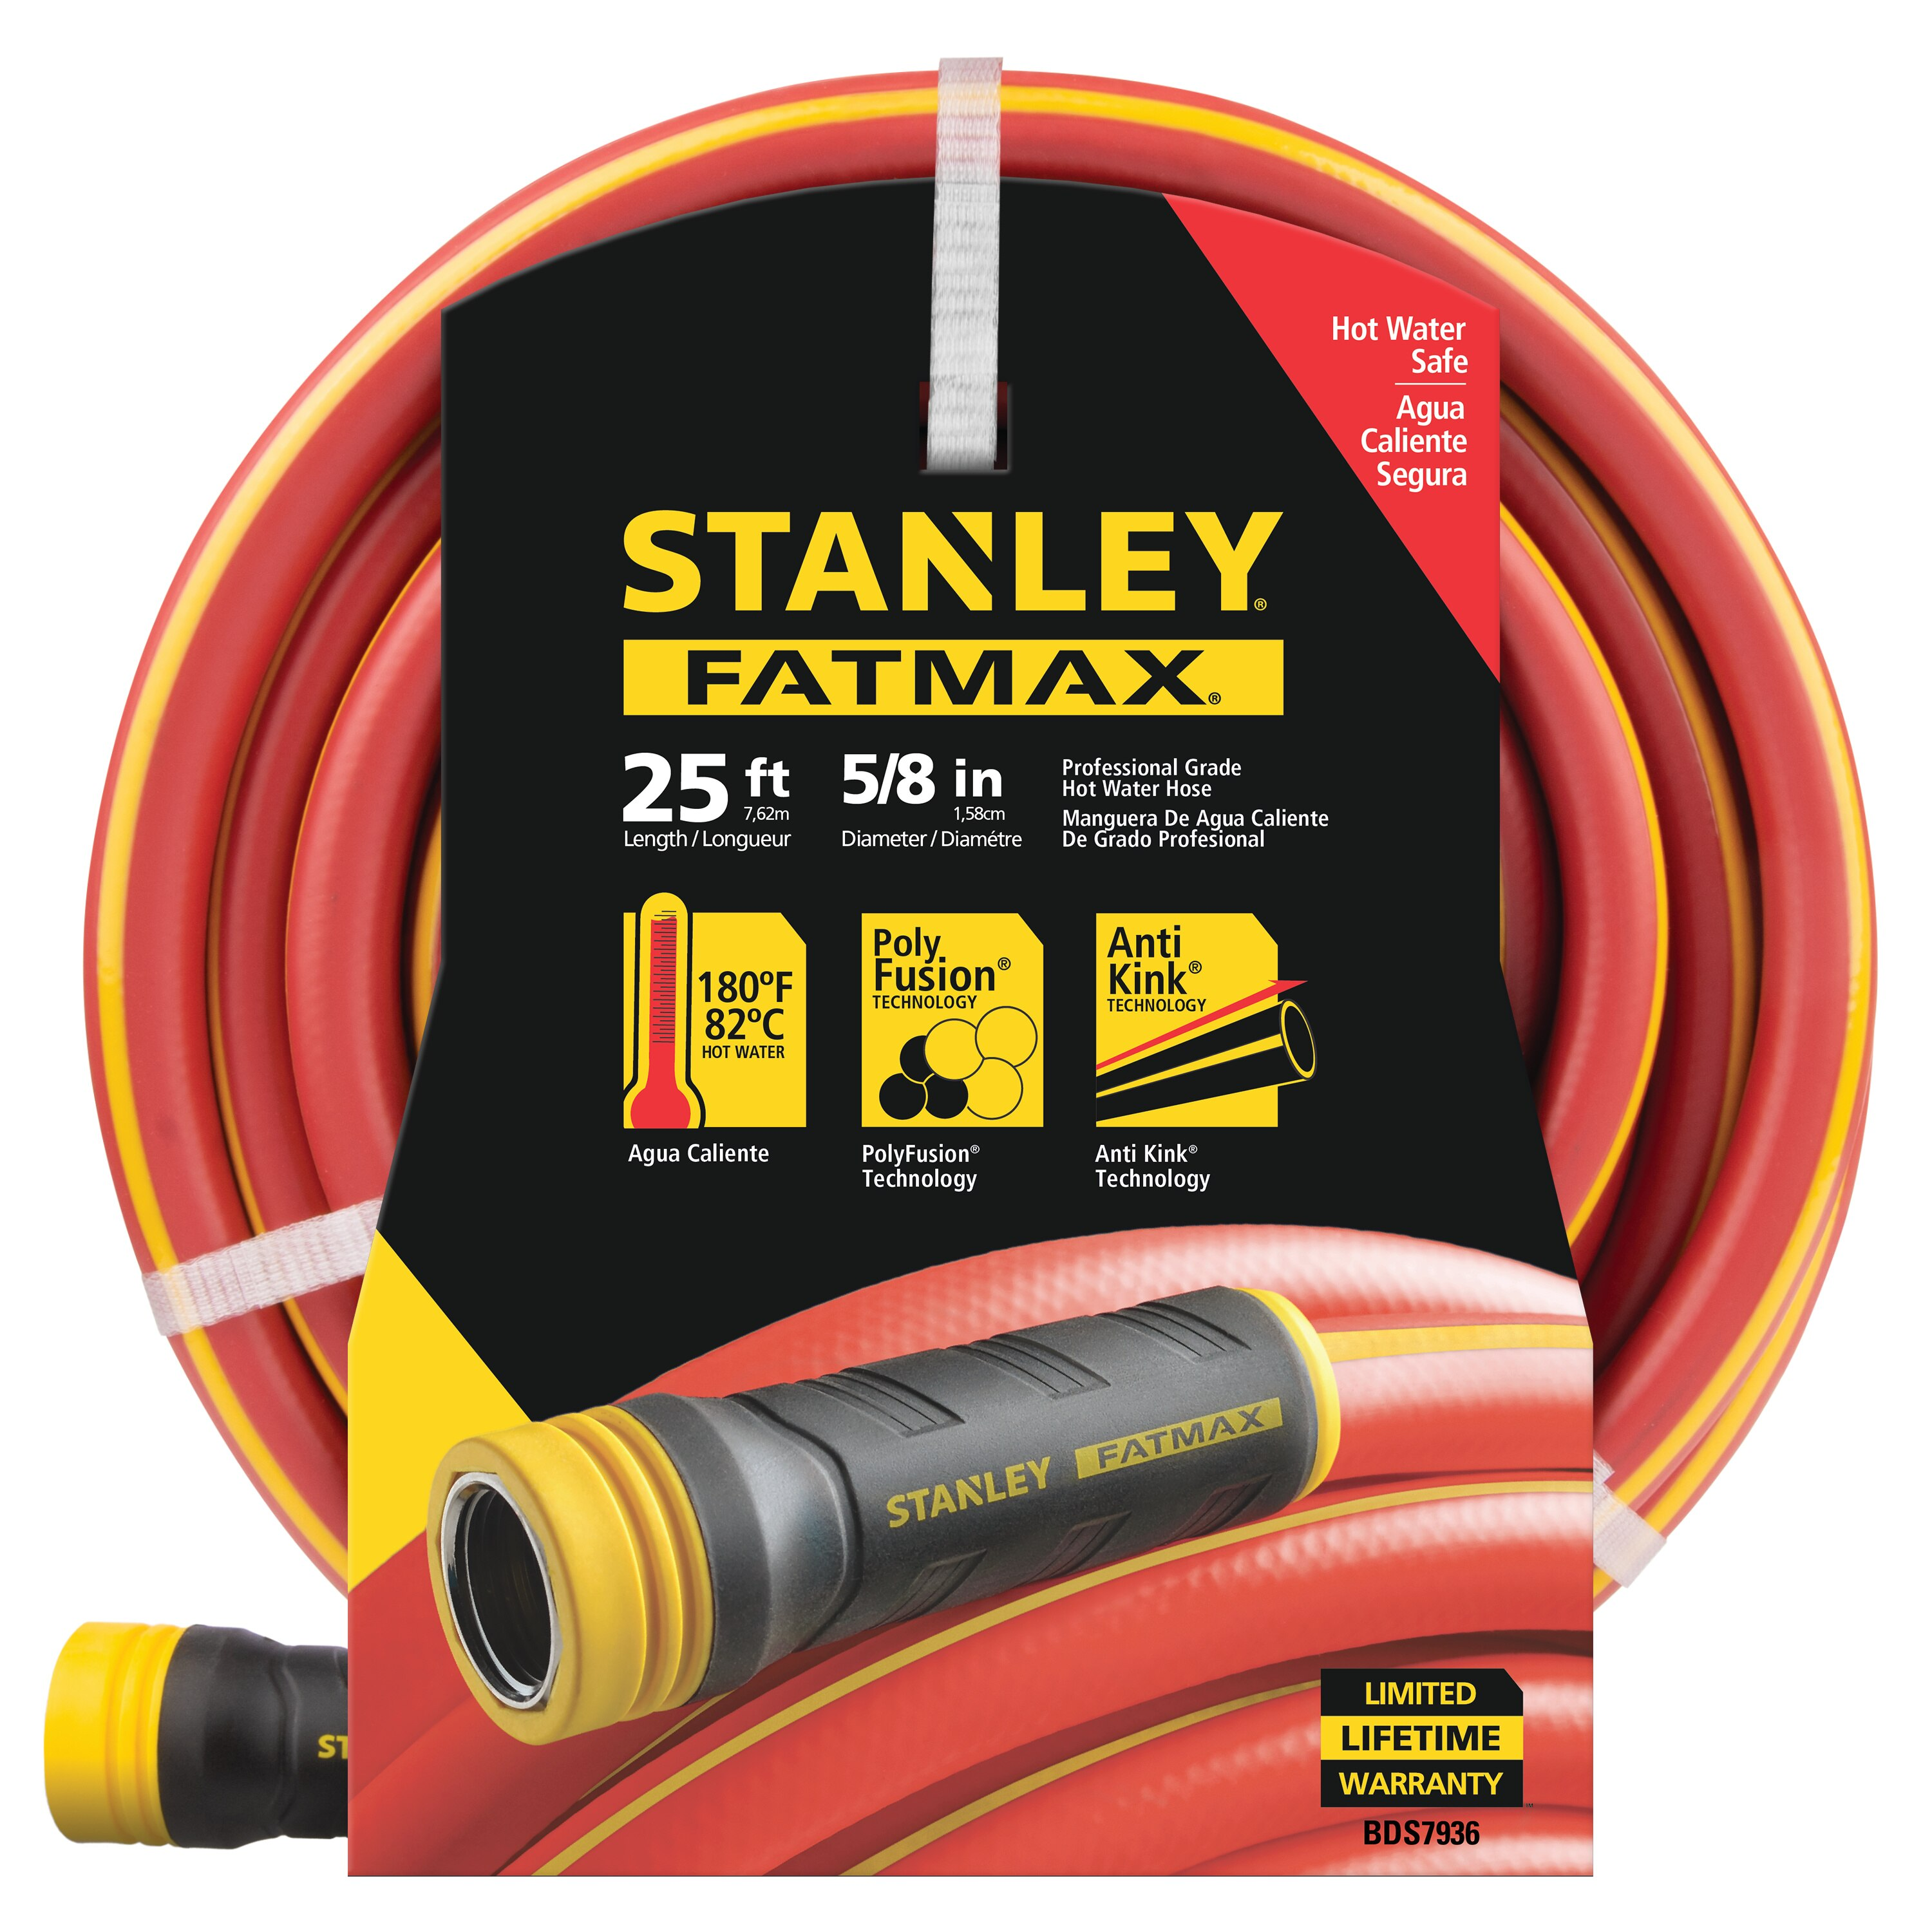 Stanley Tools - 25 ft X 58 in FATMAX POLYFUSION HOT WATER HOSE - BDS7936